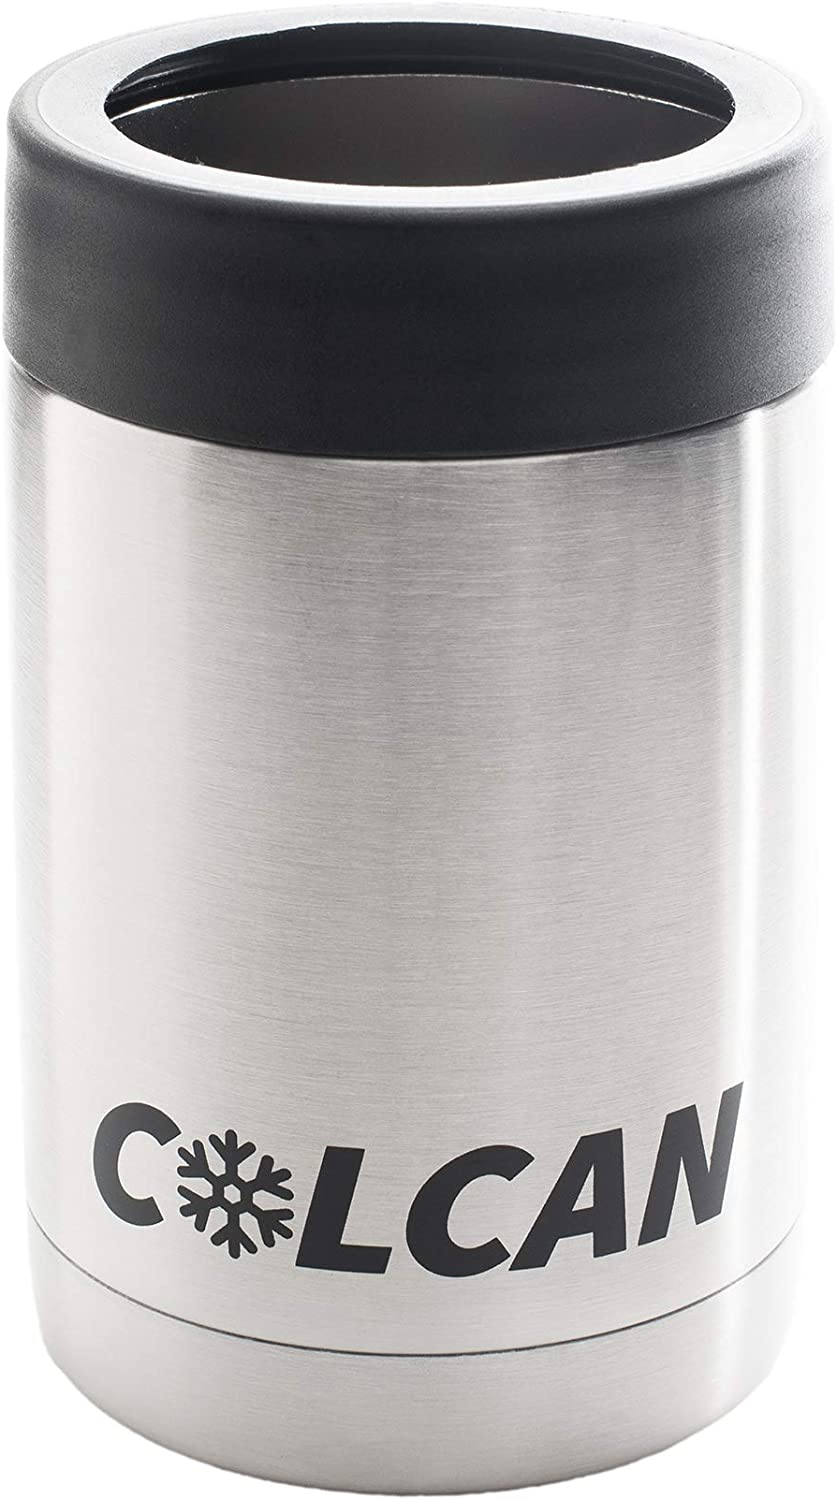 Colcan 12oz Stainless Steel Double Insulated Can Cooler for Beer and Soda